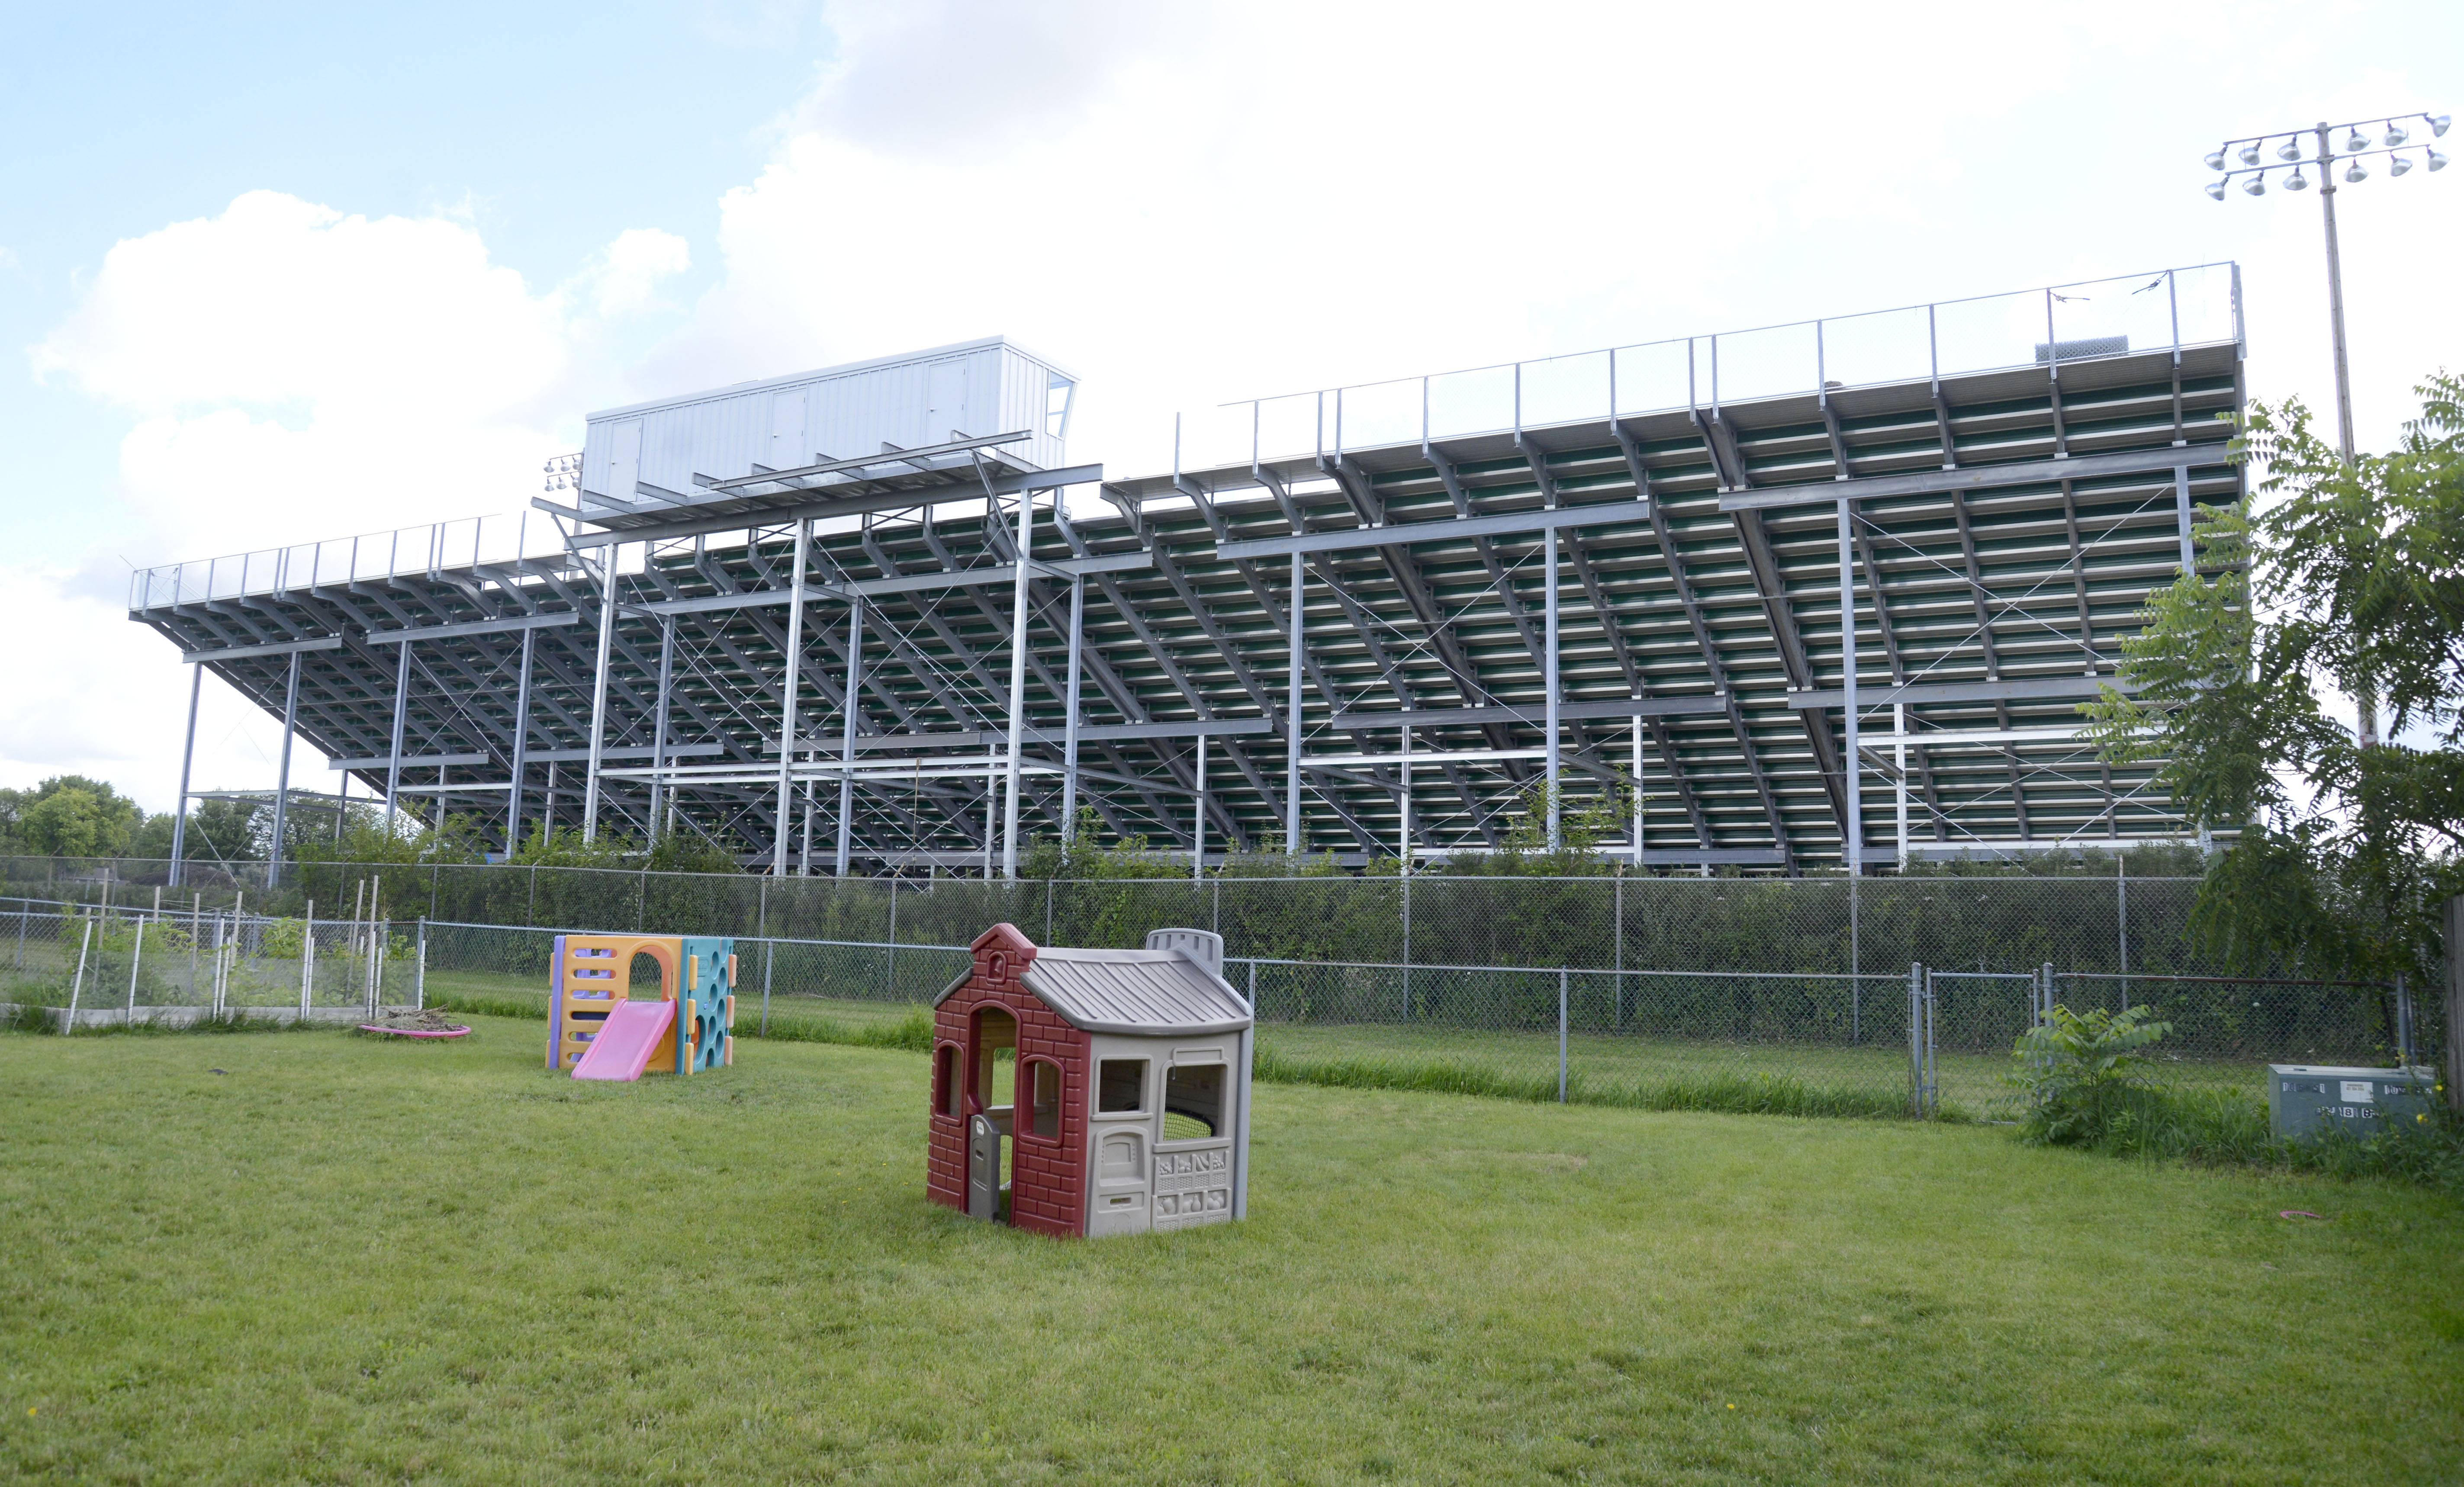 Residents who live on Amberwood Drive sued after District 155 built new bleachers at Crystal Lake South High School, saying the structure was too tall and too close to houses. An appellate court also ruled Wednesday that the district needed to go through the city of Crystal Lake's zoning process before breaking ground.